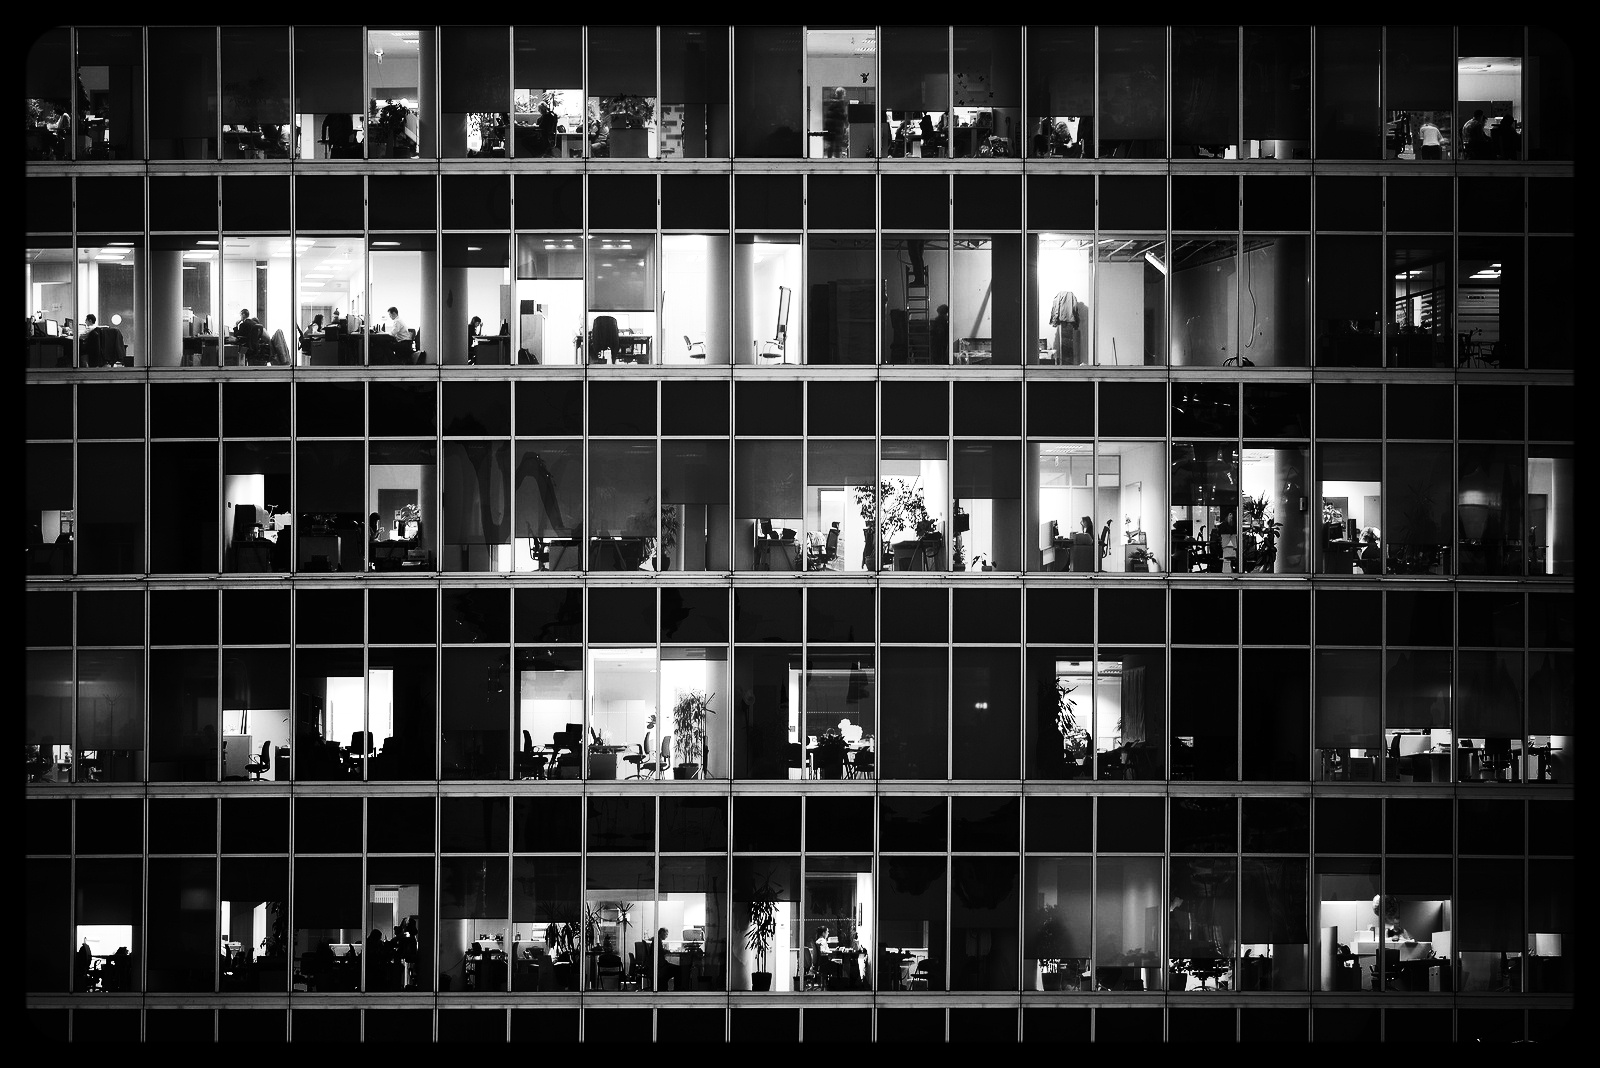 bigstock-People-Work-In-An-Offices--83218625-082978-edited.jpg